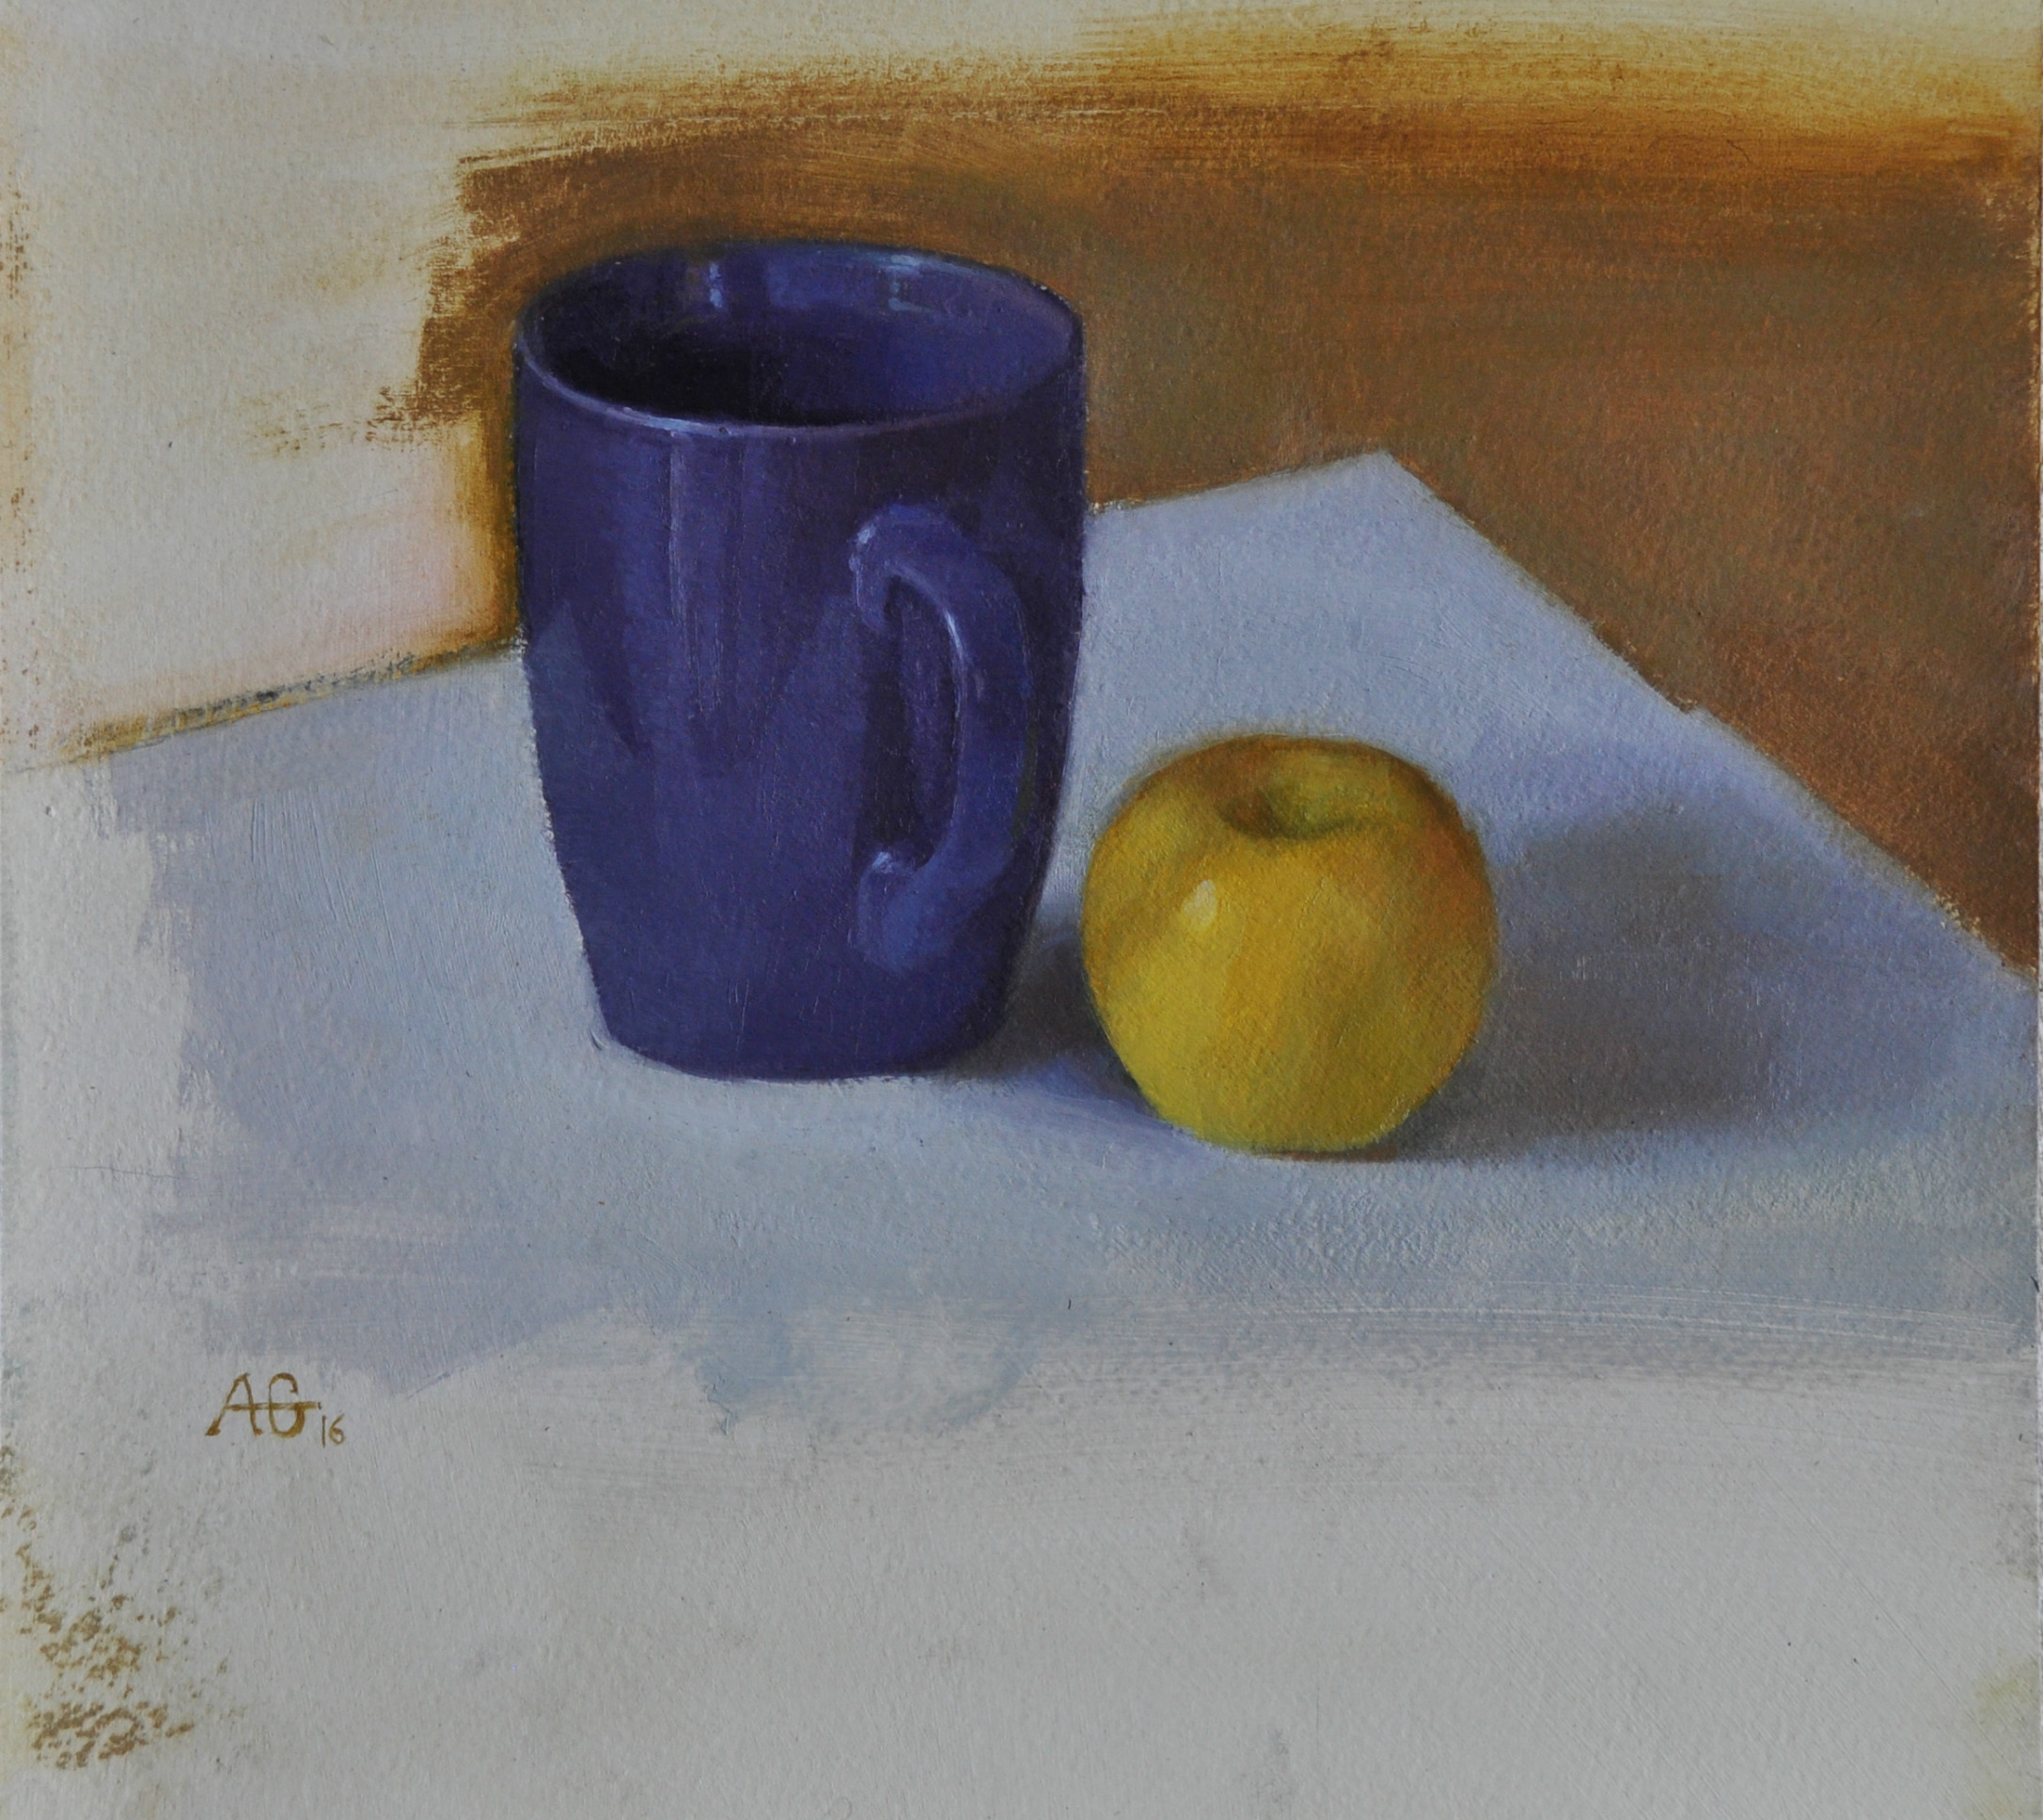 Cup and apple